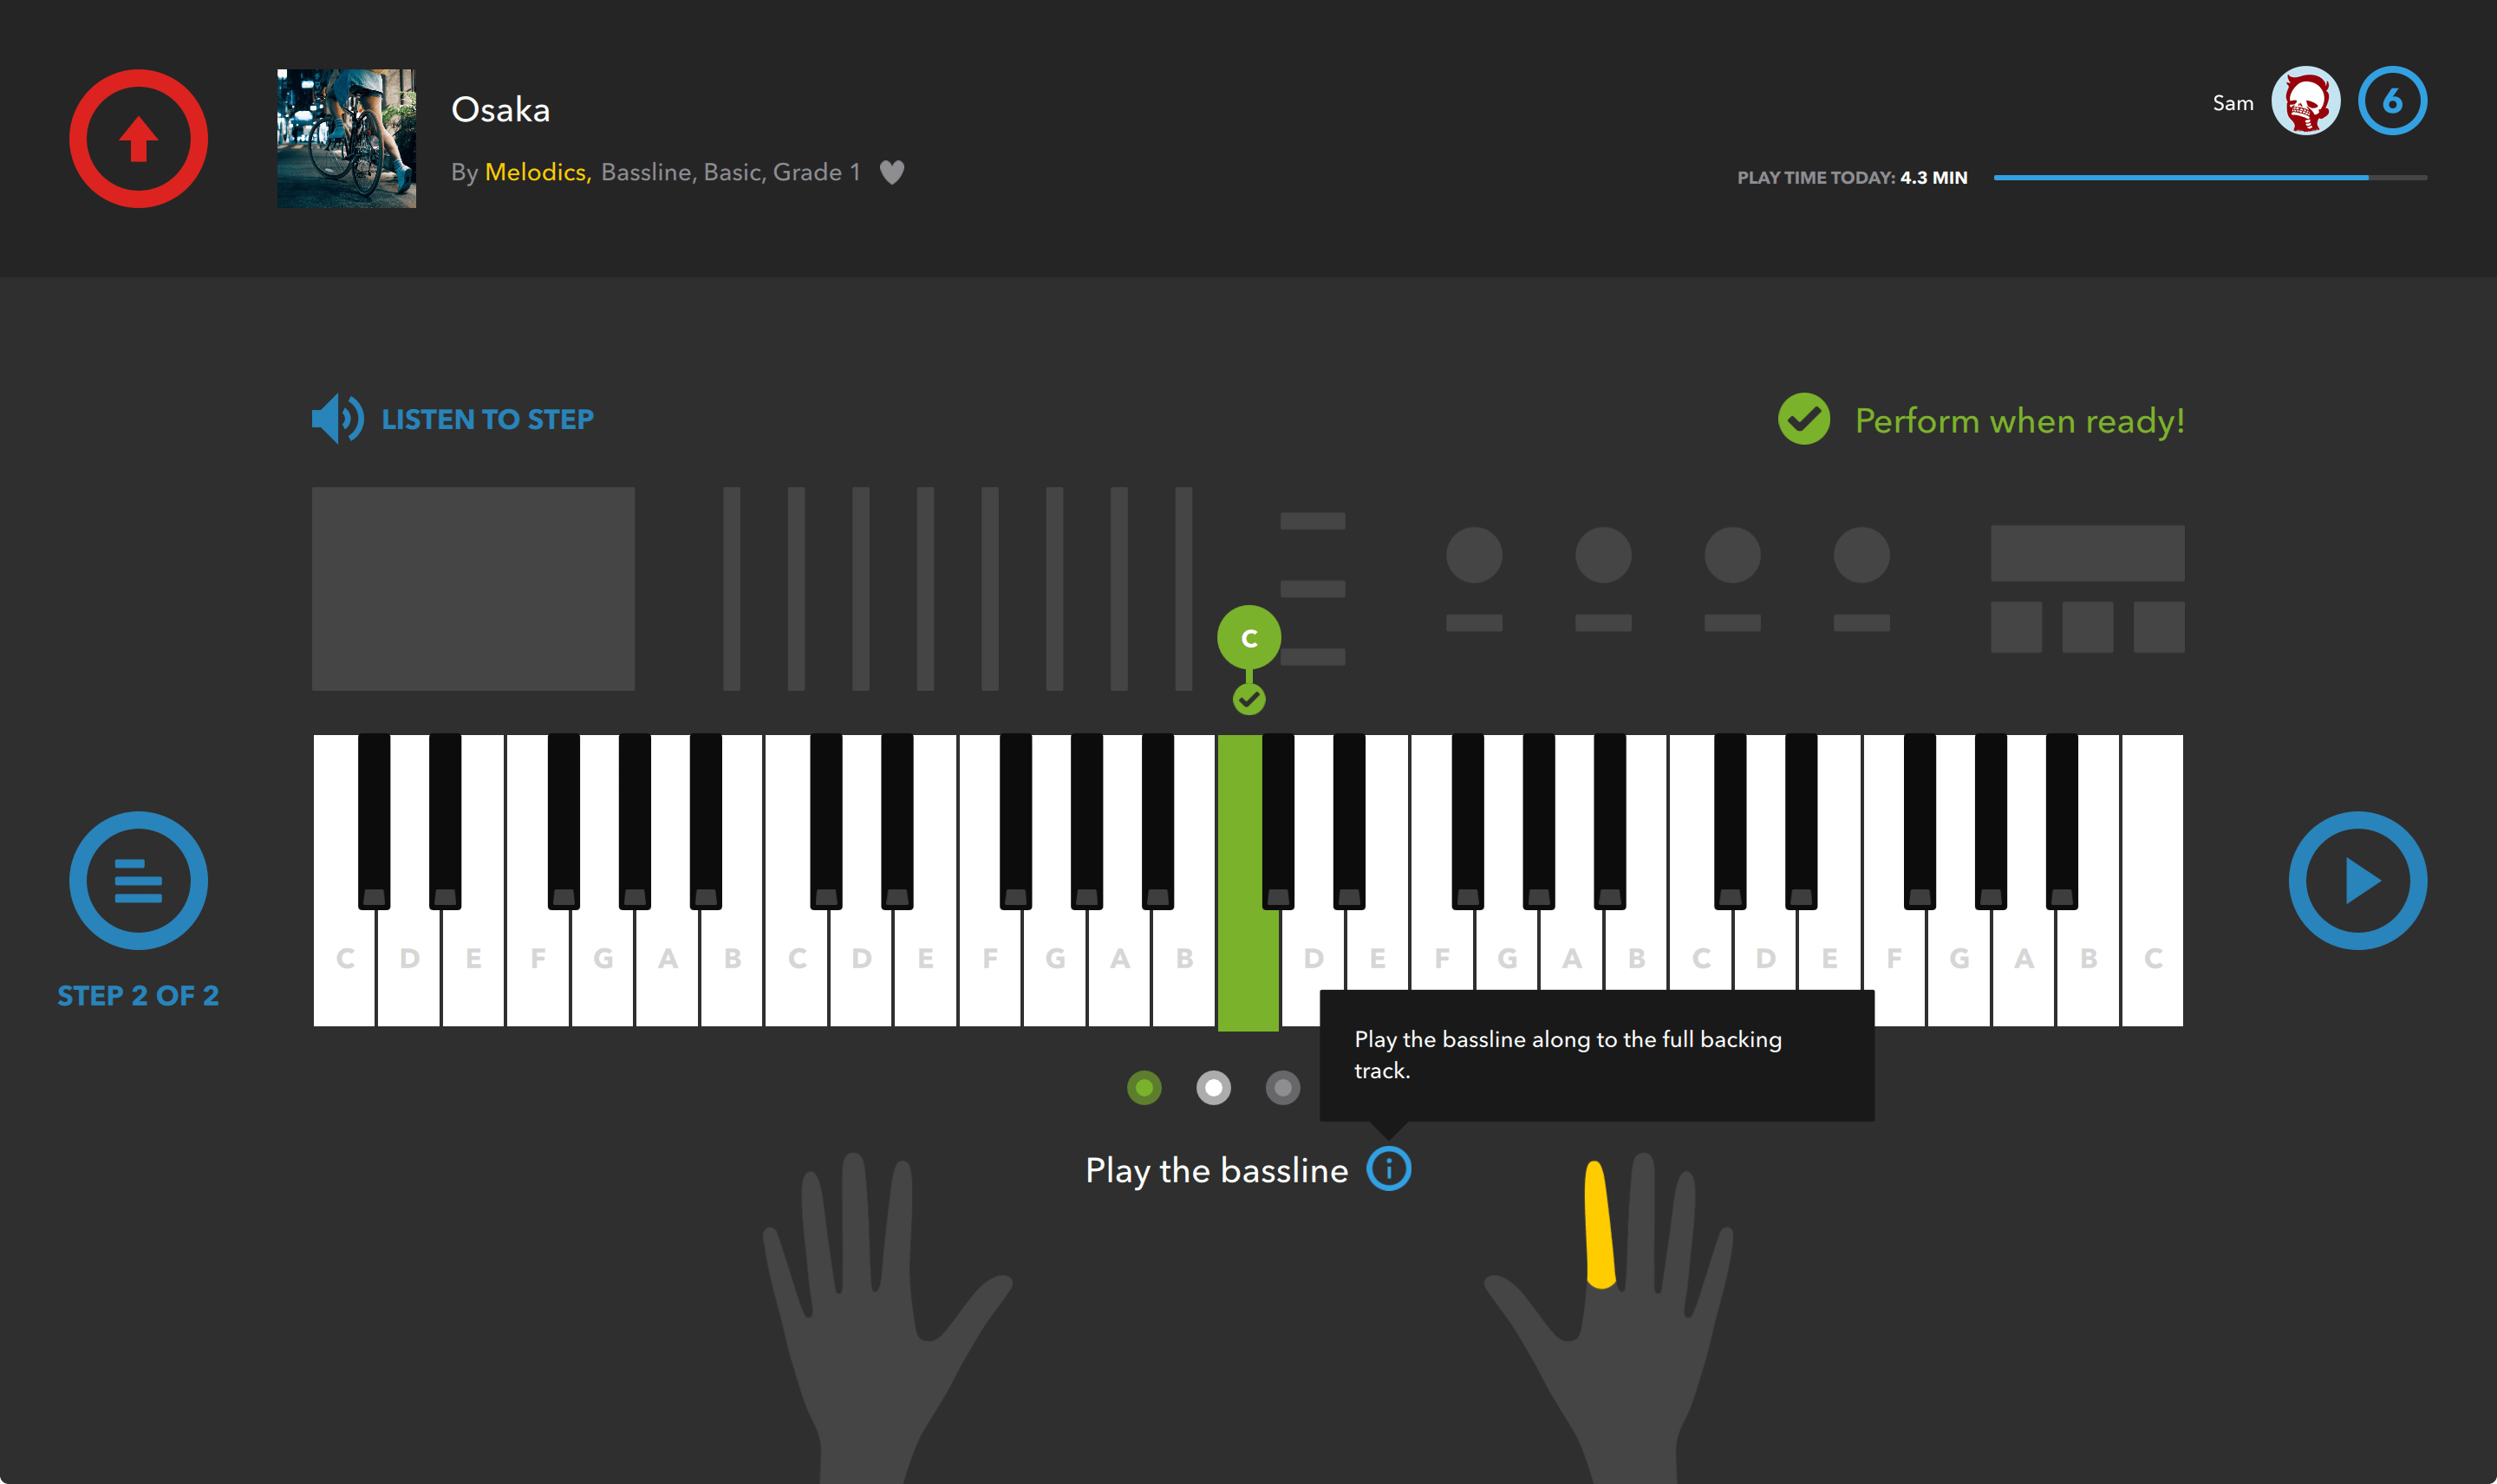 How do I see which fingers to use on which keys?